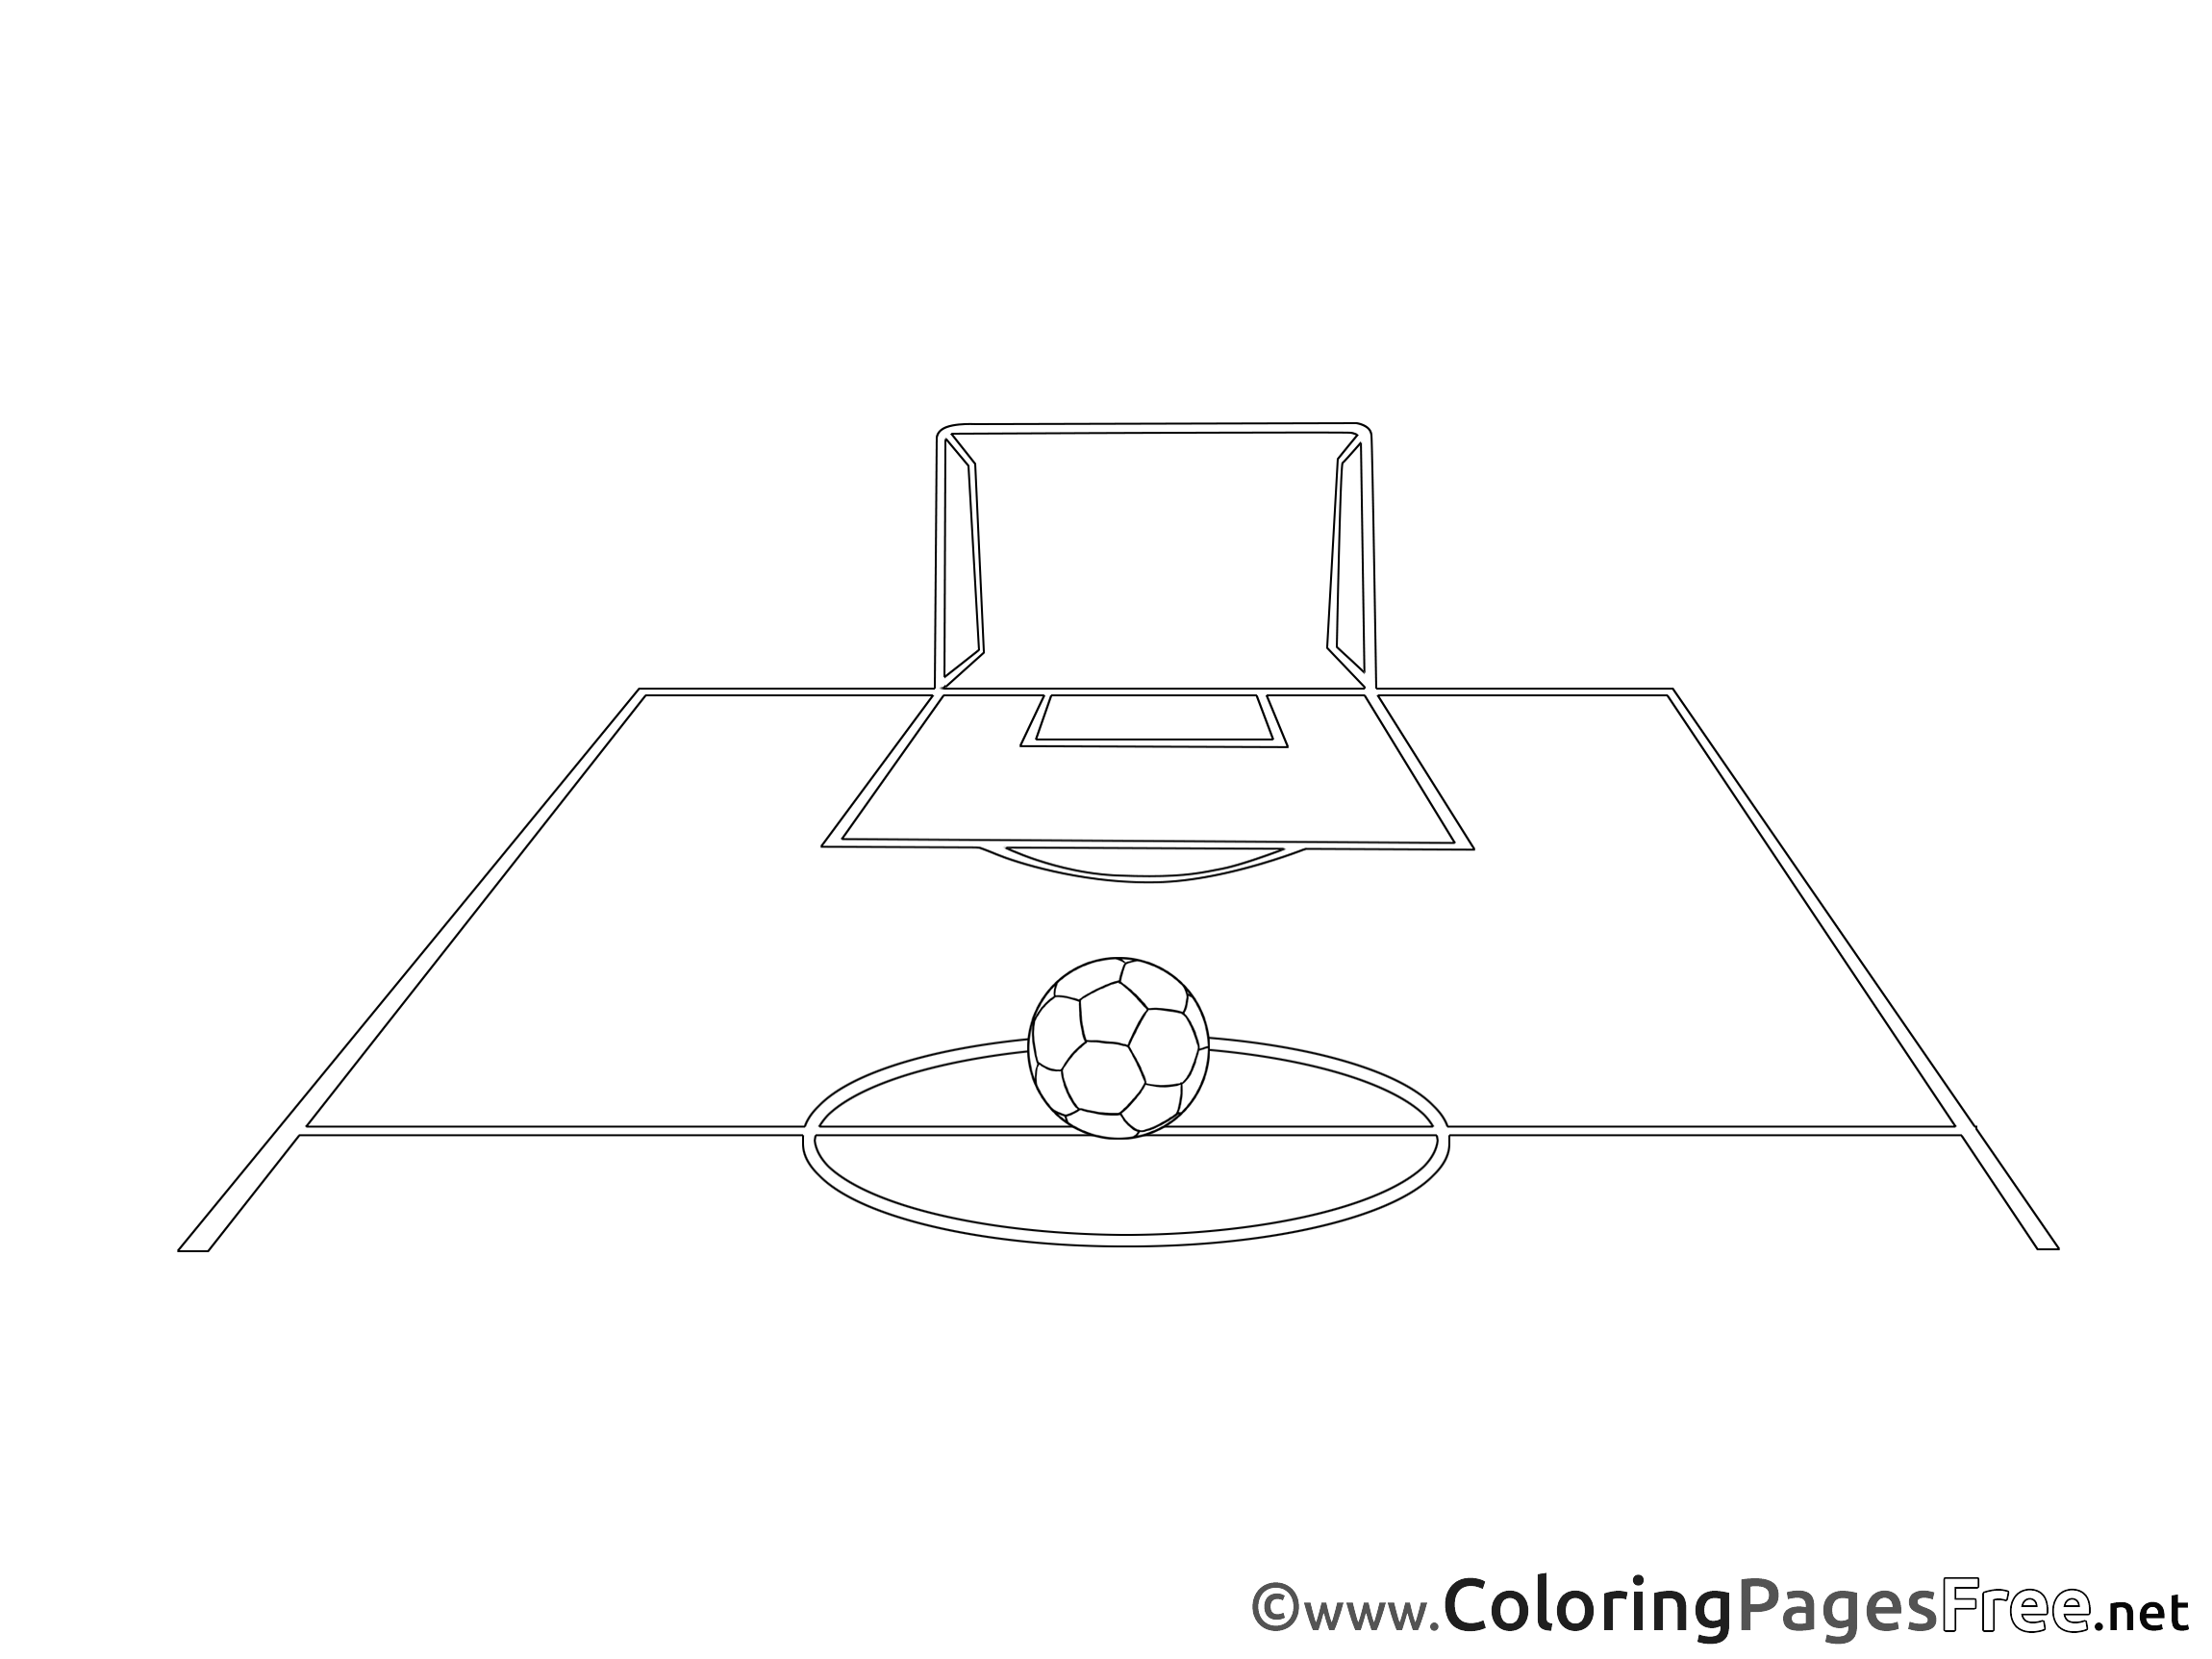 Field Ball Game Kids Soccer Coloring Pages